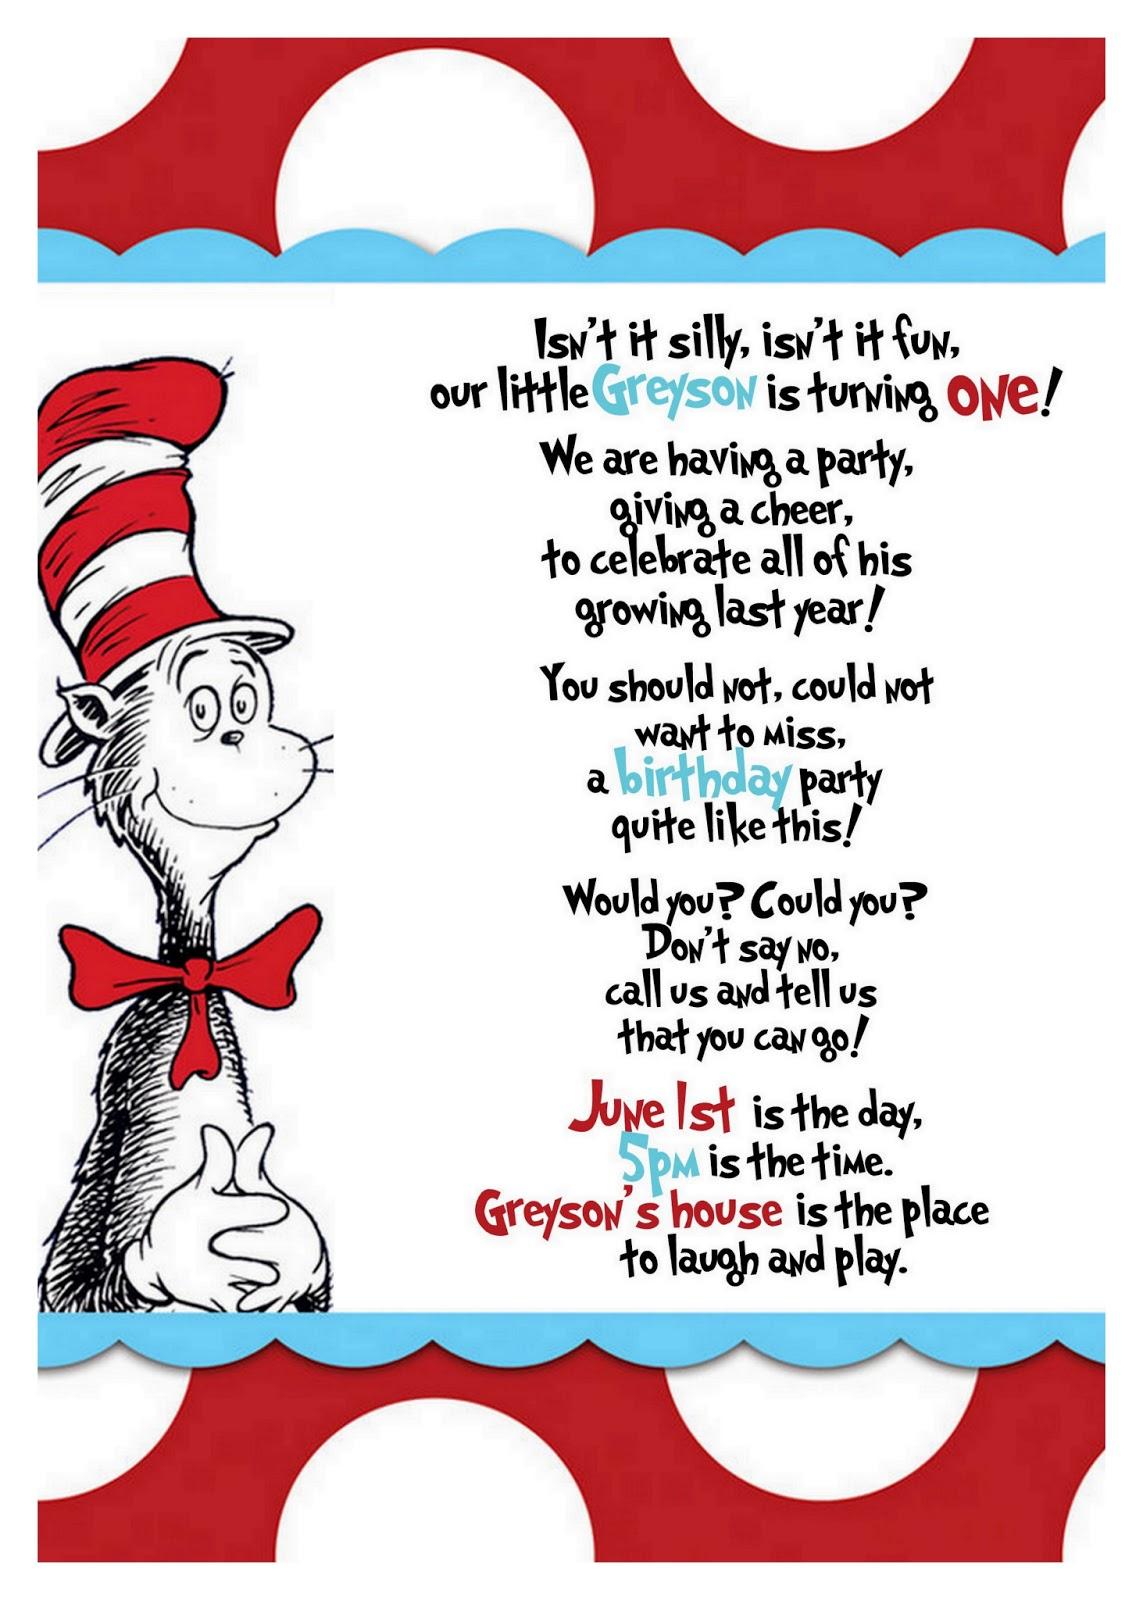 Dr Seuss Quotes About Love Creative Juices Drseuss Party